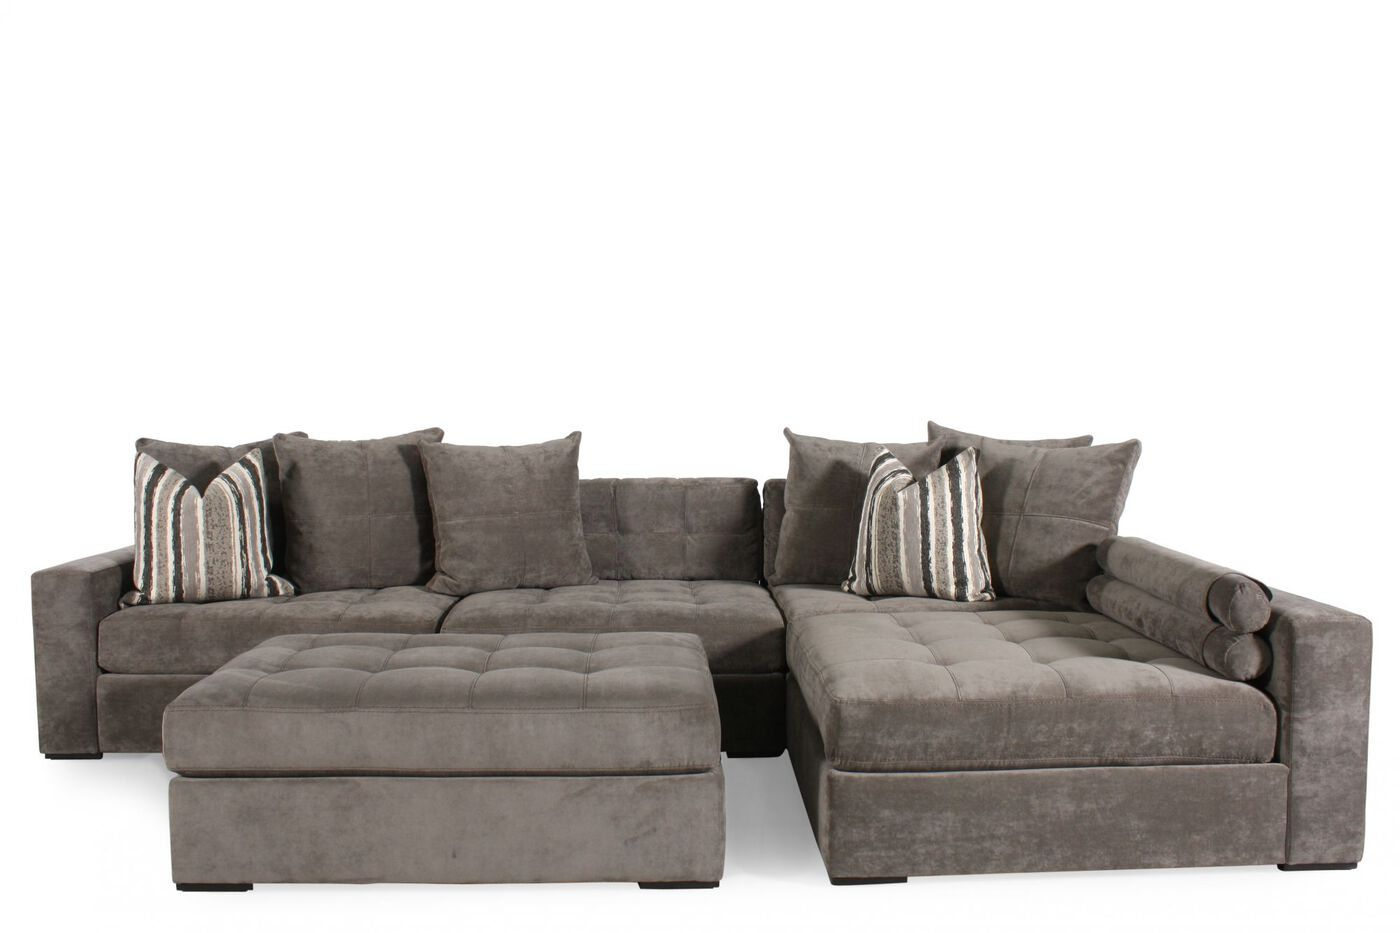 Jonathan Louis Noah Gray Sectional : Mathis Brothers Furniture